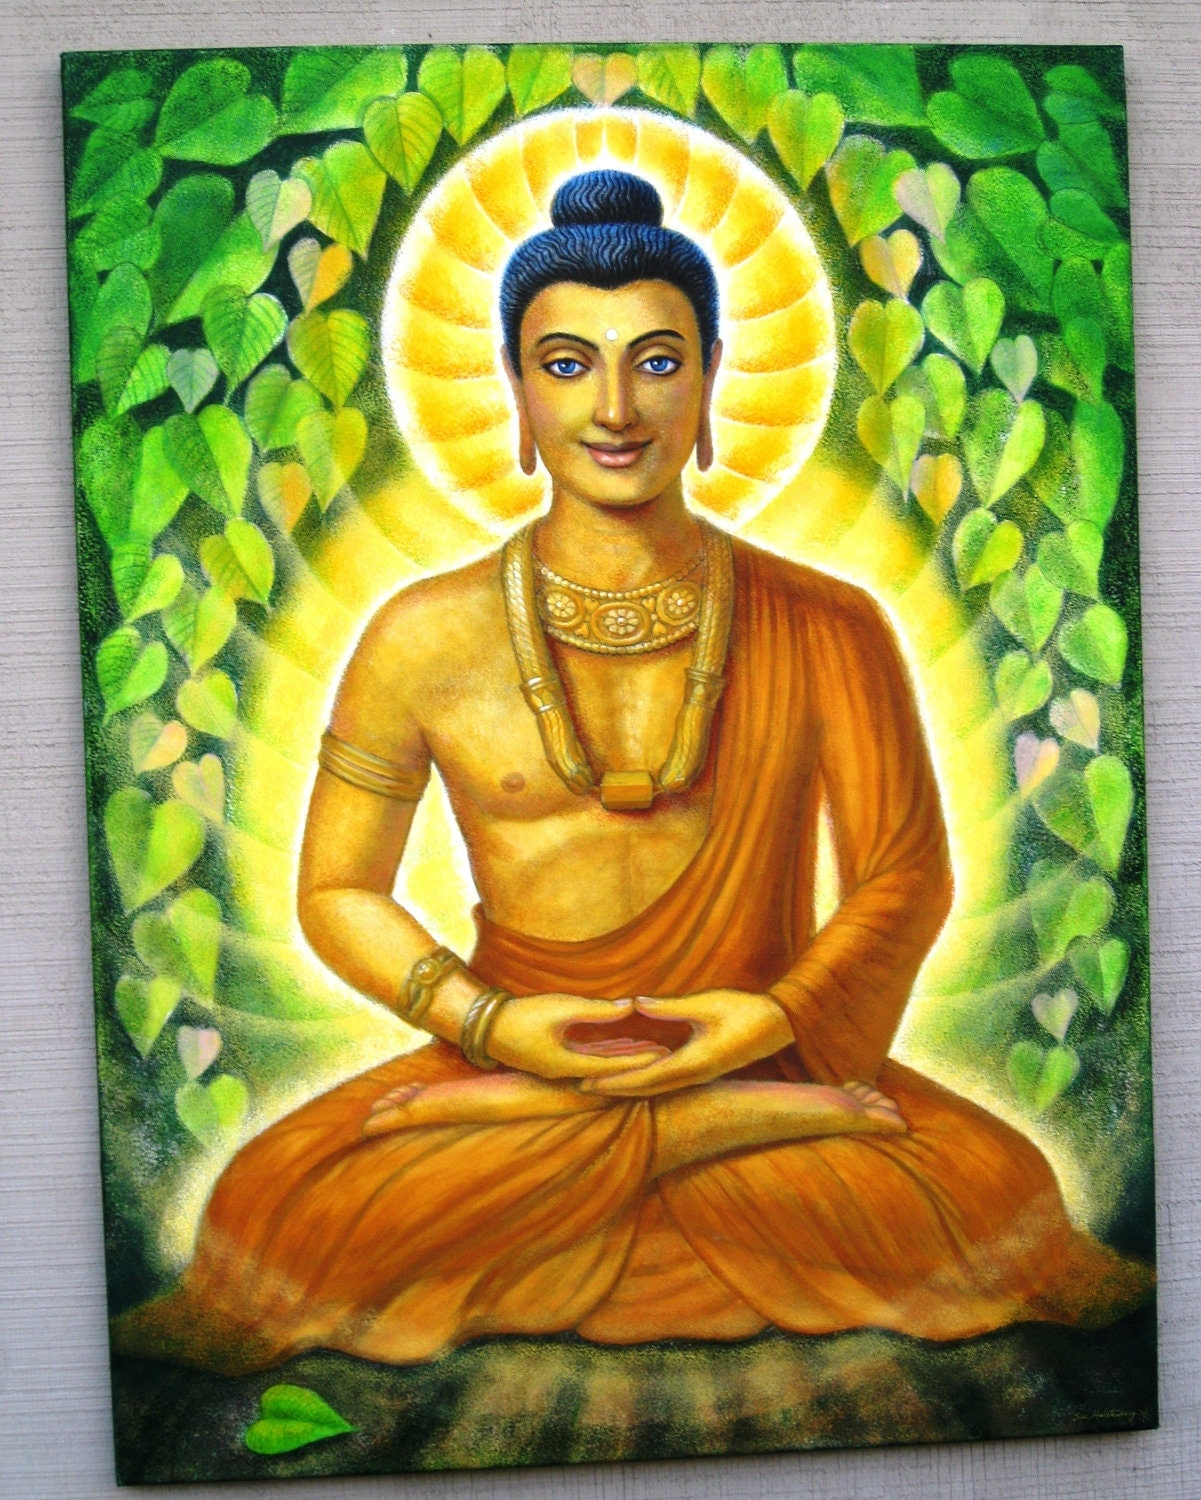 the events in the life of siddhartha gantama essay At the age of twenty-nine siddhartha gautama, prince of a ruling house in  the  3rd century bc) gautama follows an ascetic life for six years before deciding that .